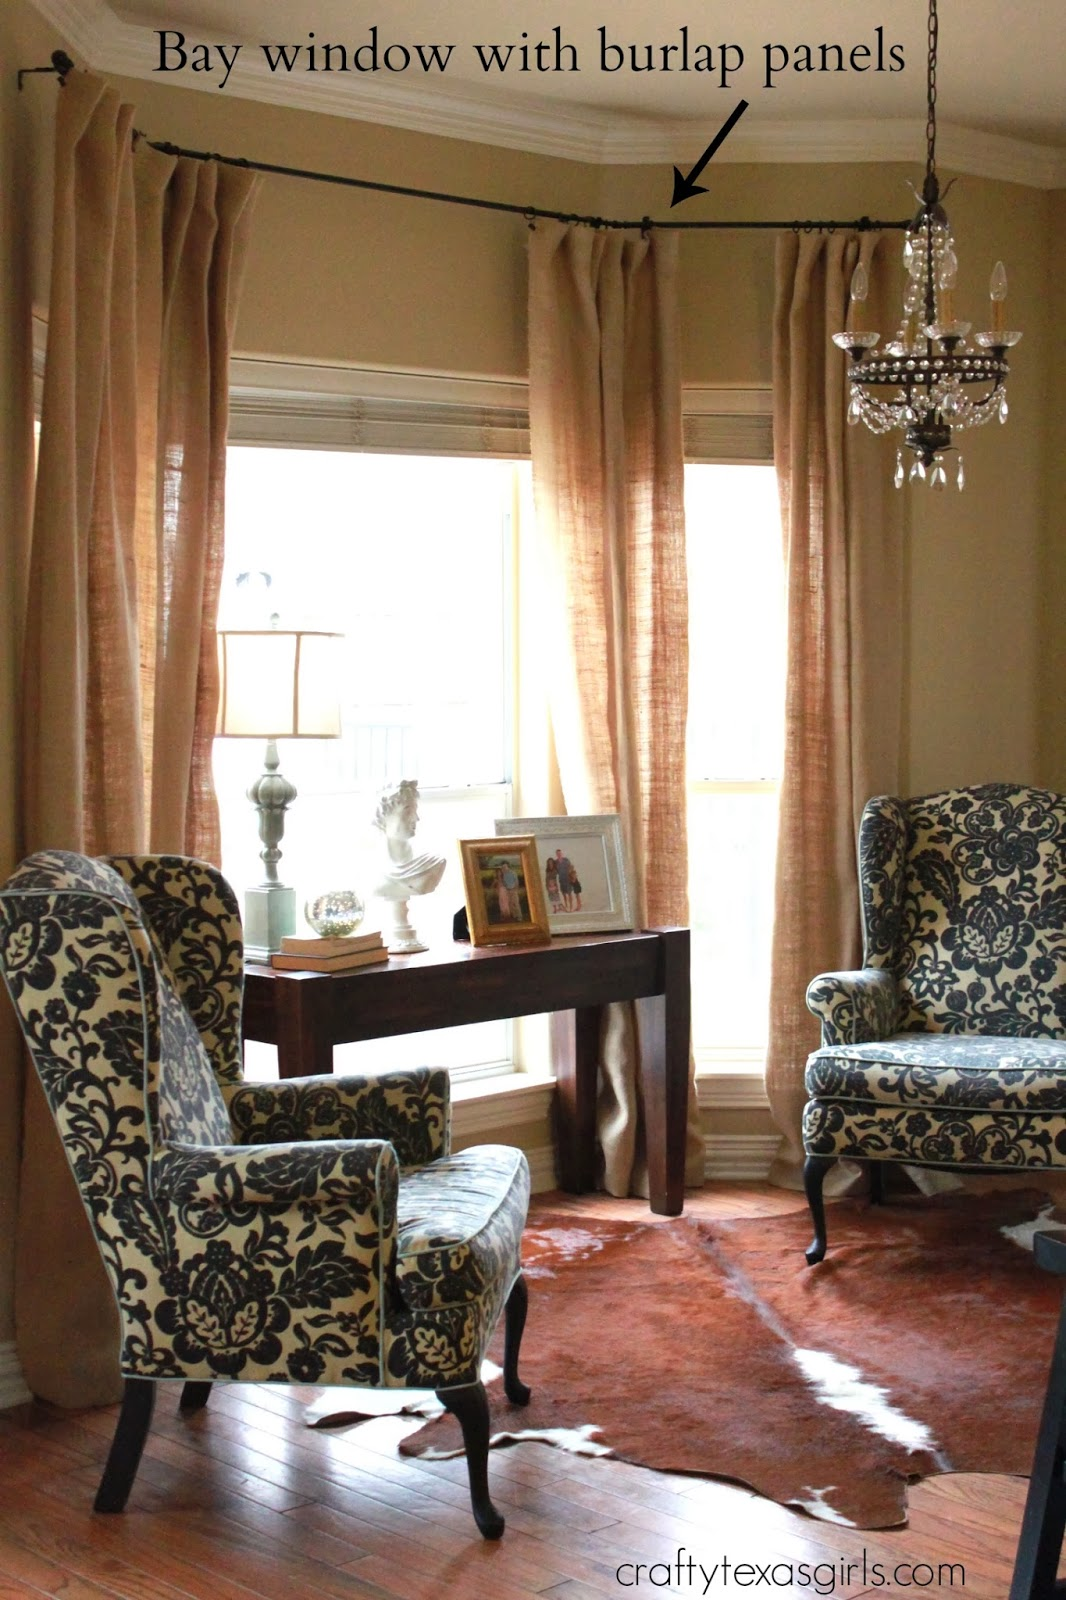 What Are Your Experiences With Hanging Curtains